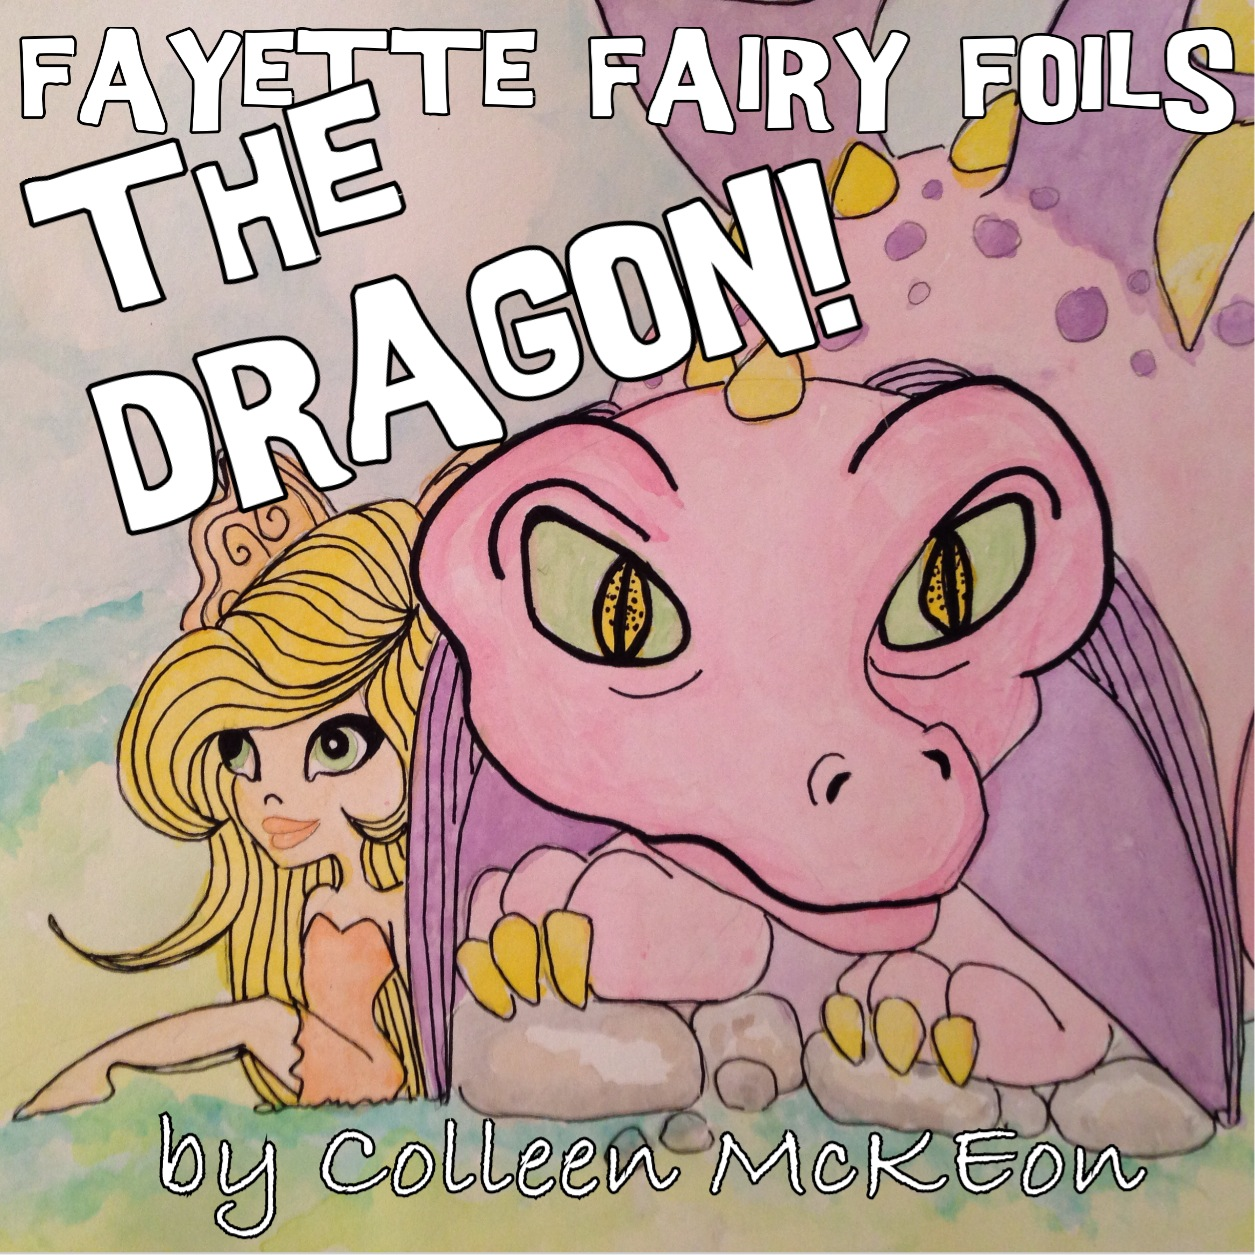 """FAYETTE FAIRY FOILS THE DRAGON!"""